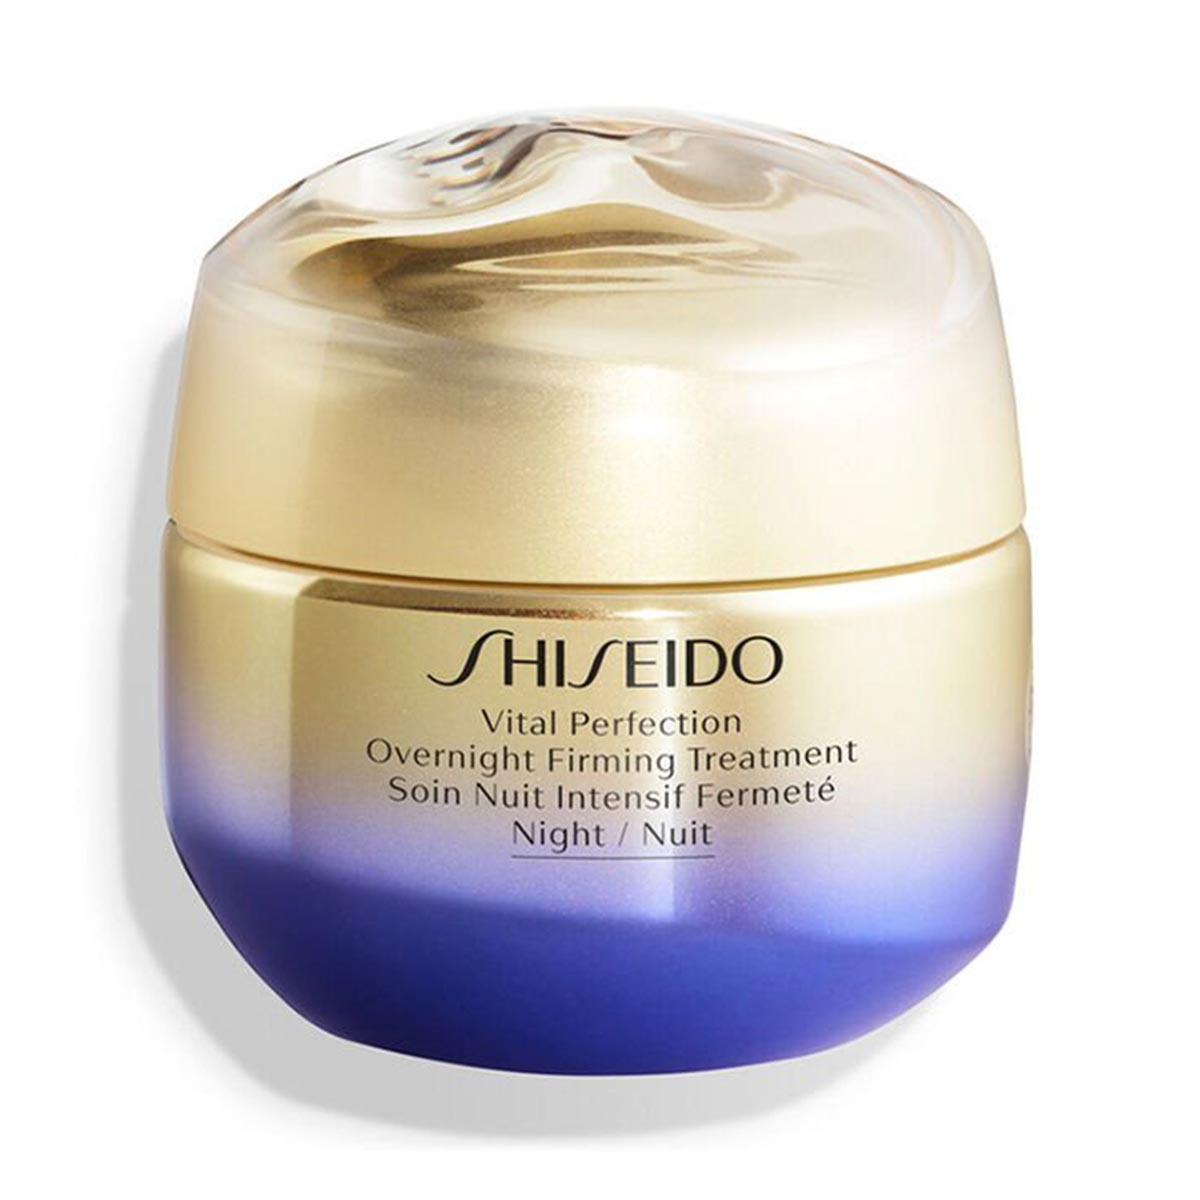 Shiseido vital perfection tratamiento reafirmante nocturno tester 50ml